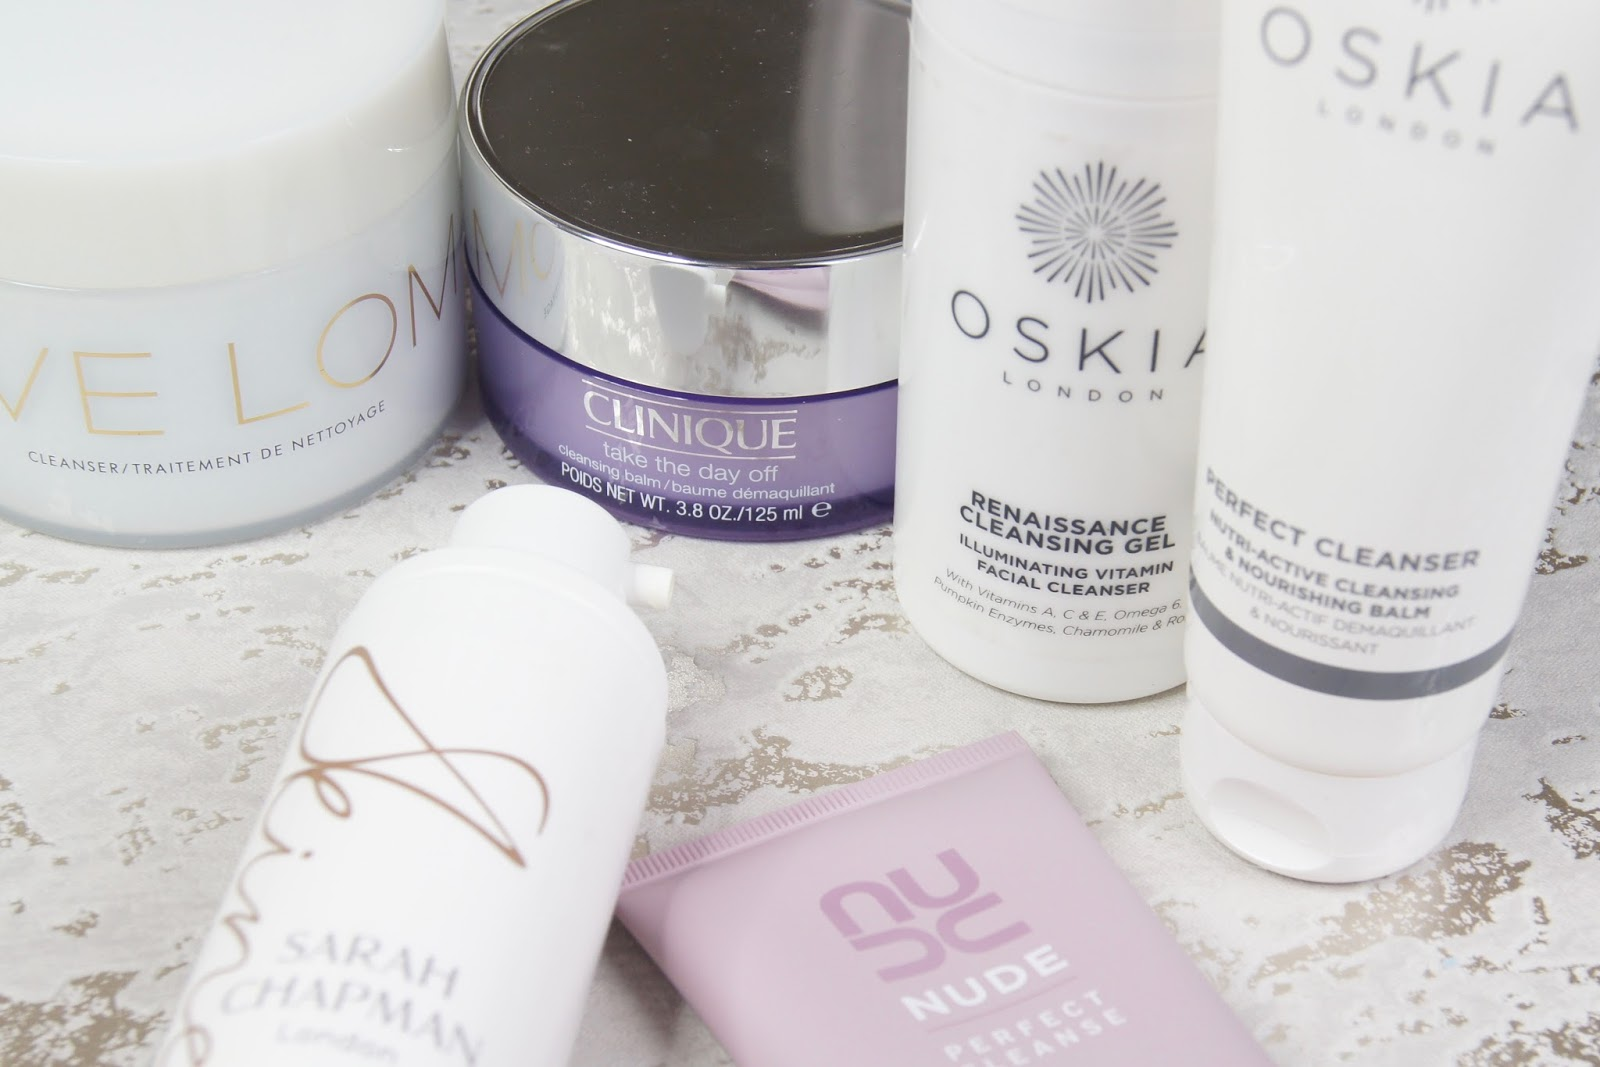 best worst balm cleansers skincare reviews oskia renaissance cleansing gel perfect cleanser sarah chapman ultimate cleanse eve lom cleanser clinique take the day off balm nude perfect cleanse omega cleansing jelly